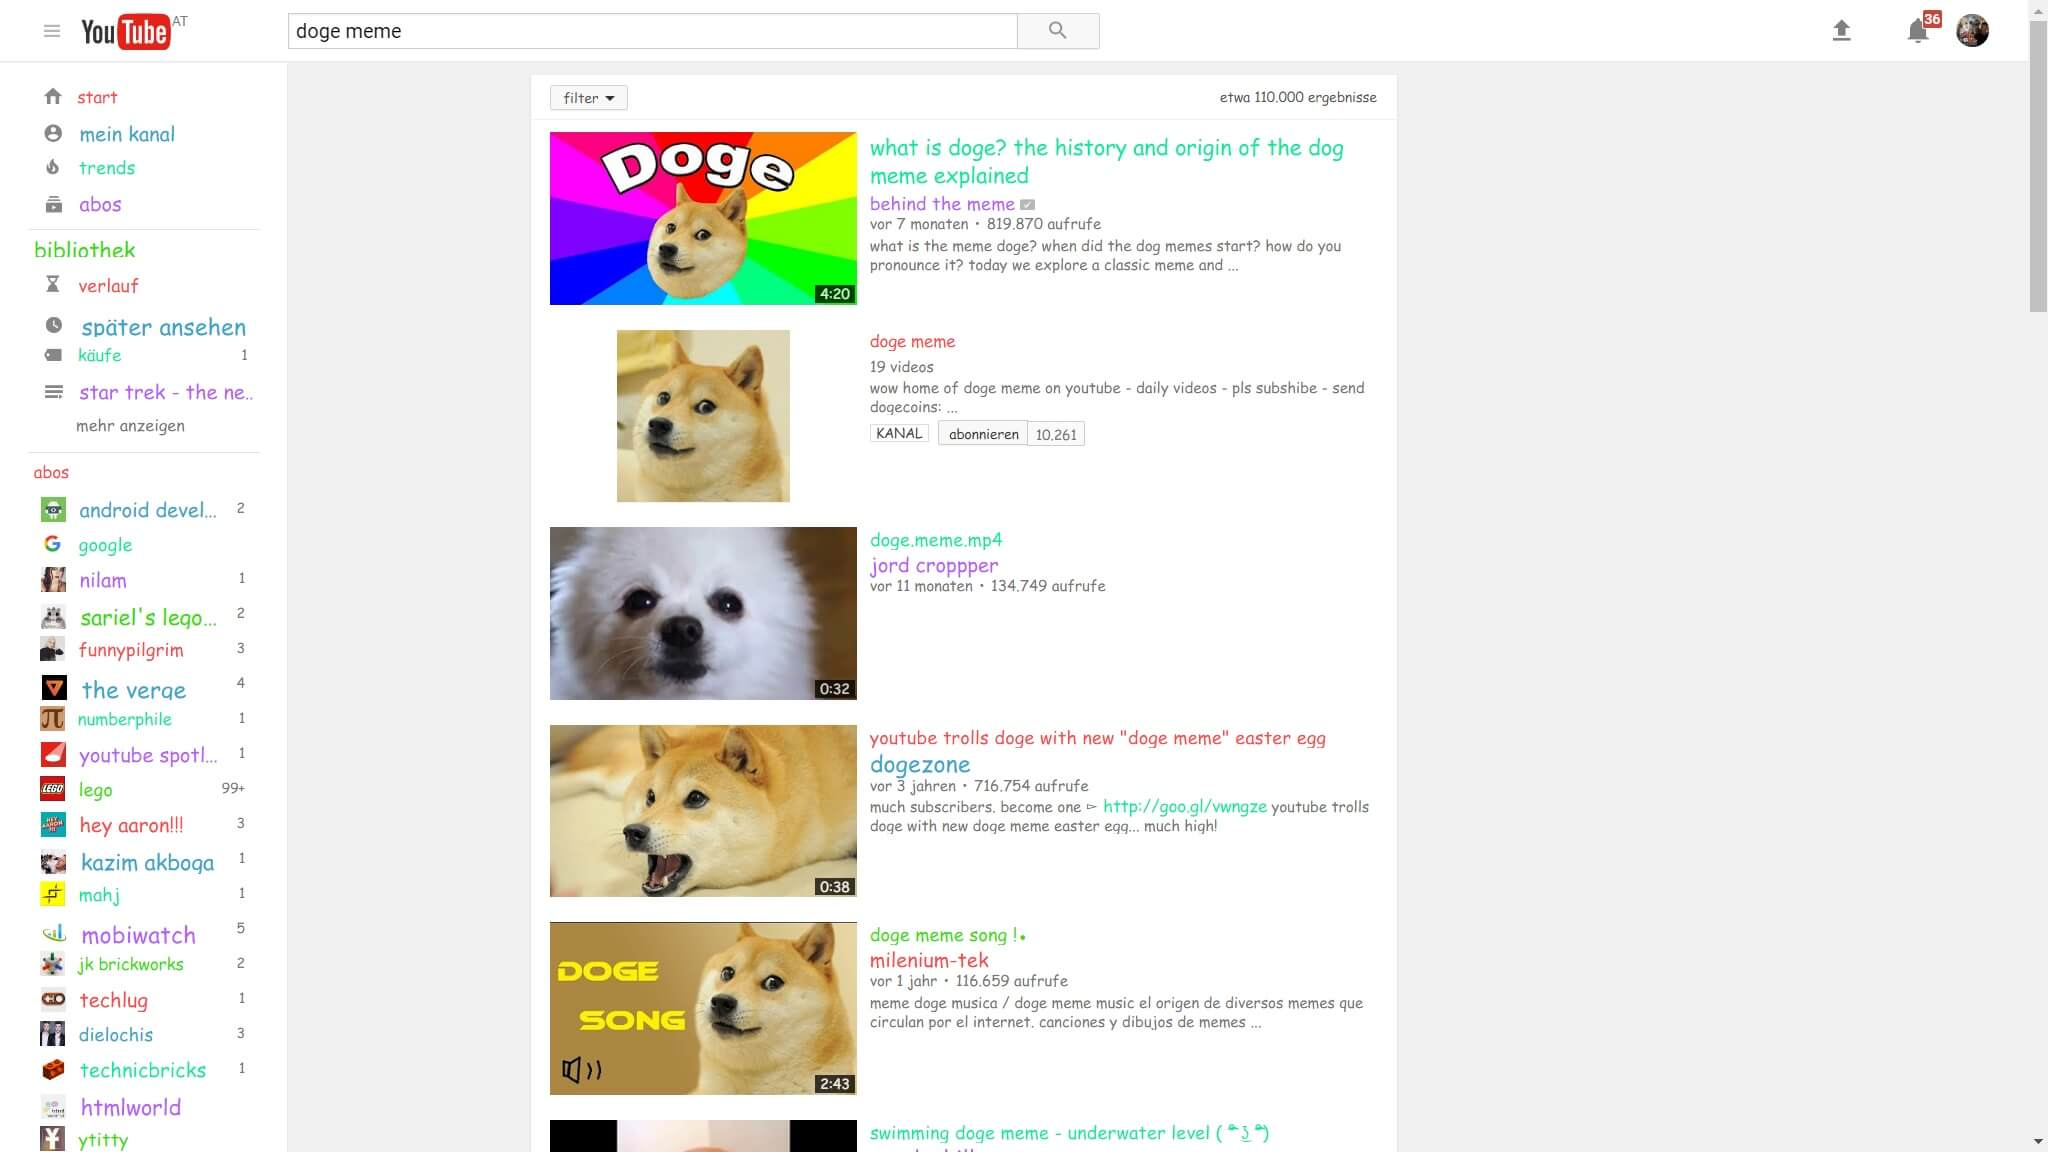 youtube doge meme